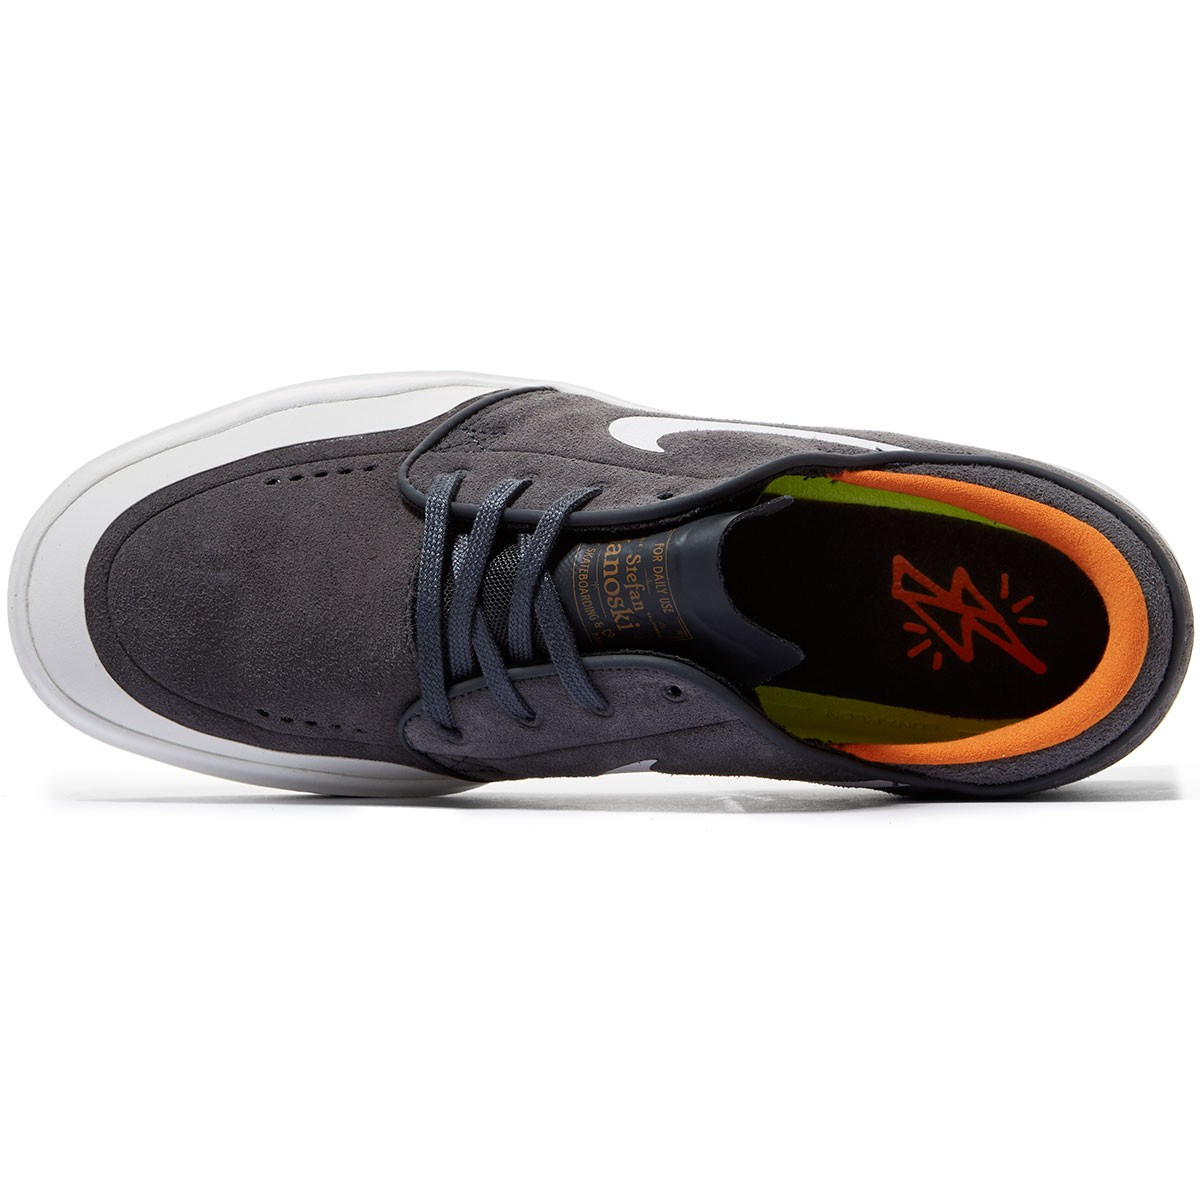 promo code 85e1b fb53f Nike SB Stefan Janoski Hyperfeel XT Shoes - Anthracite White Summit White  Clay Orange